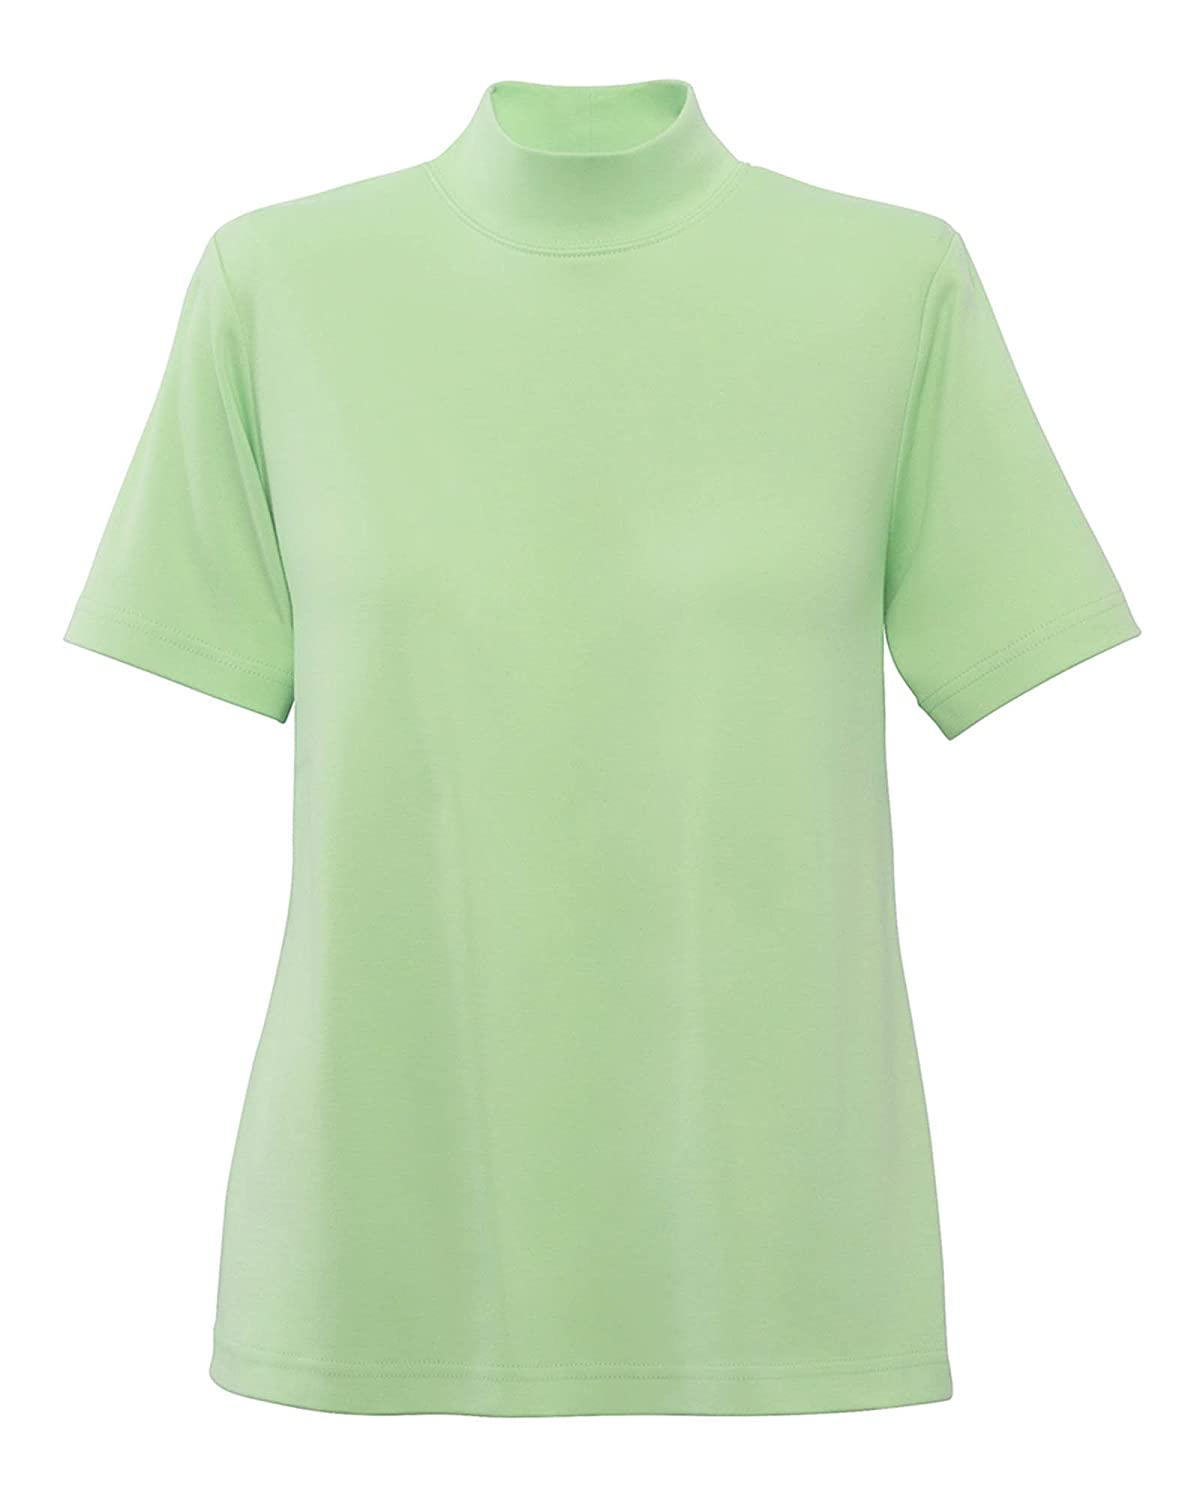 ad484614905a17 UltraSofts Cotton-Polyester Mock Top at Amazon Women s Clothing store